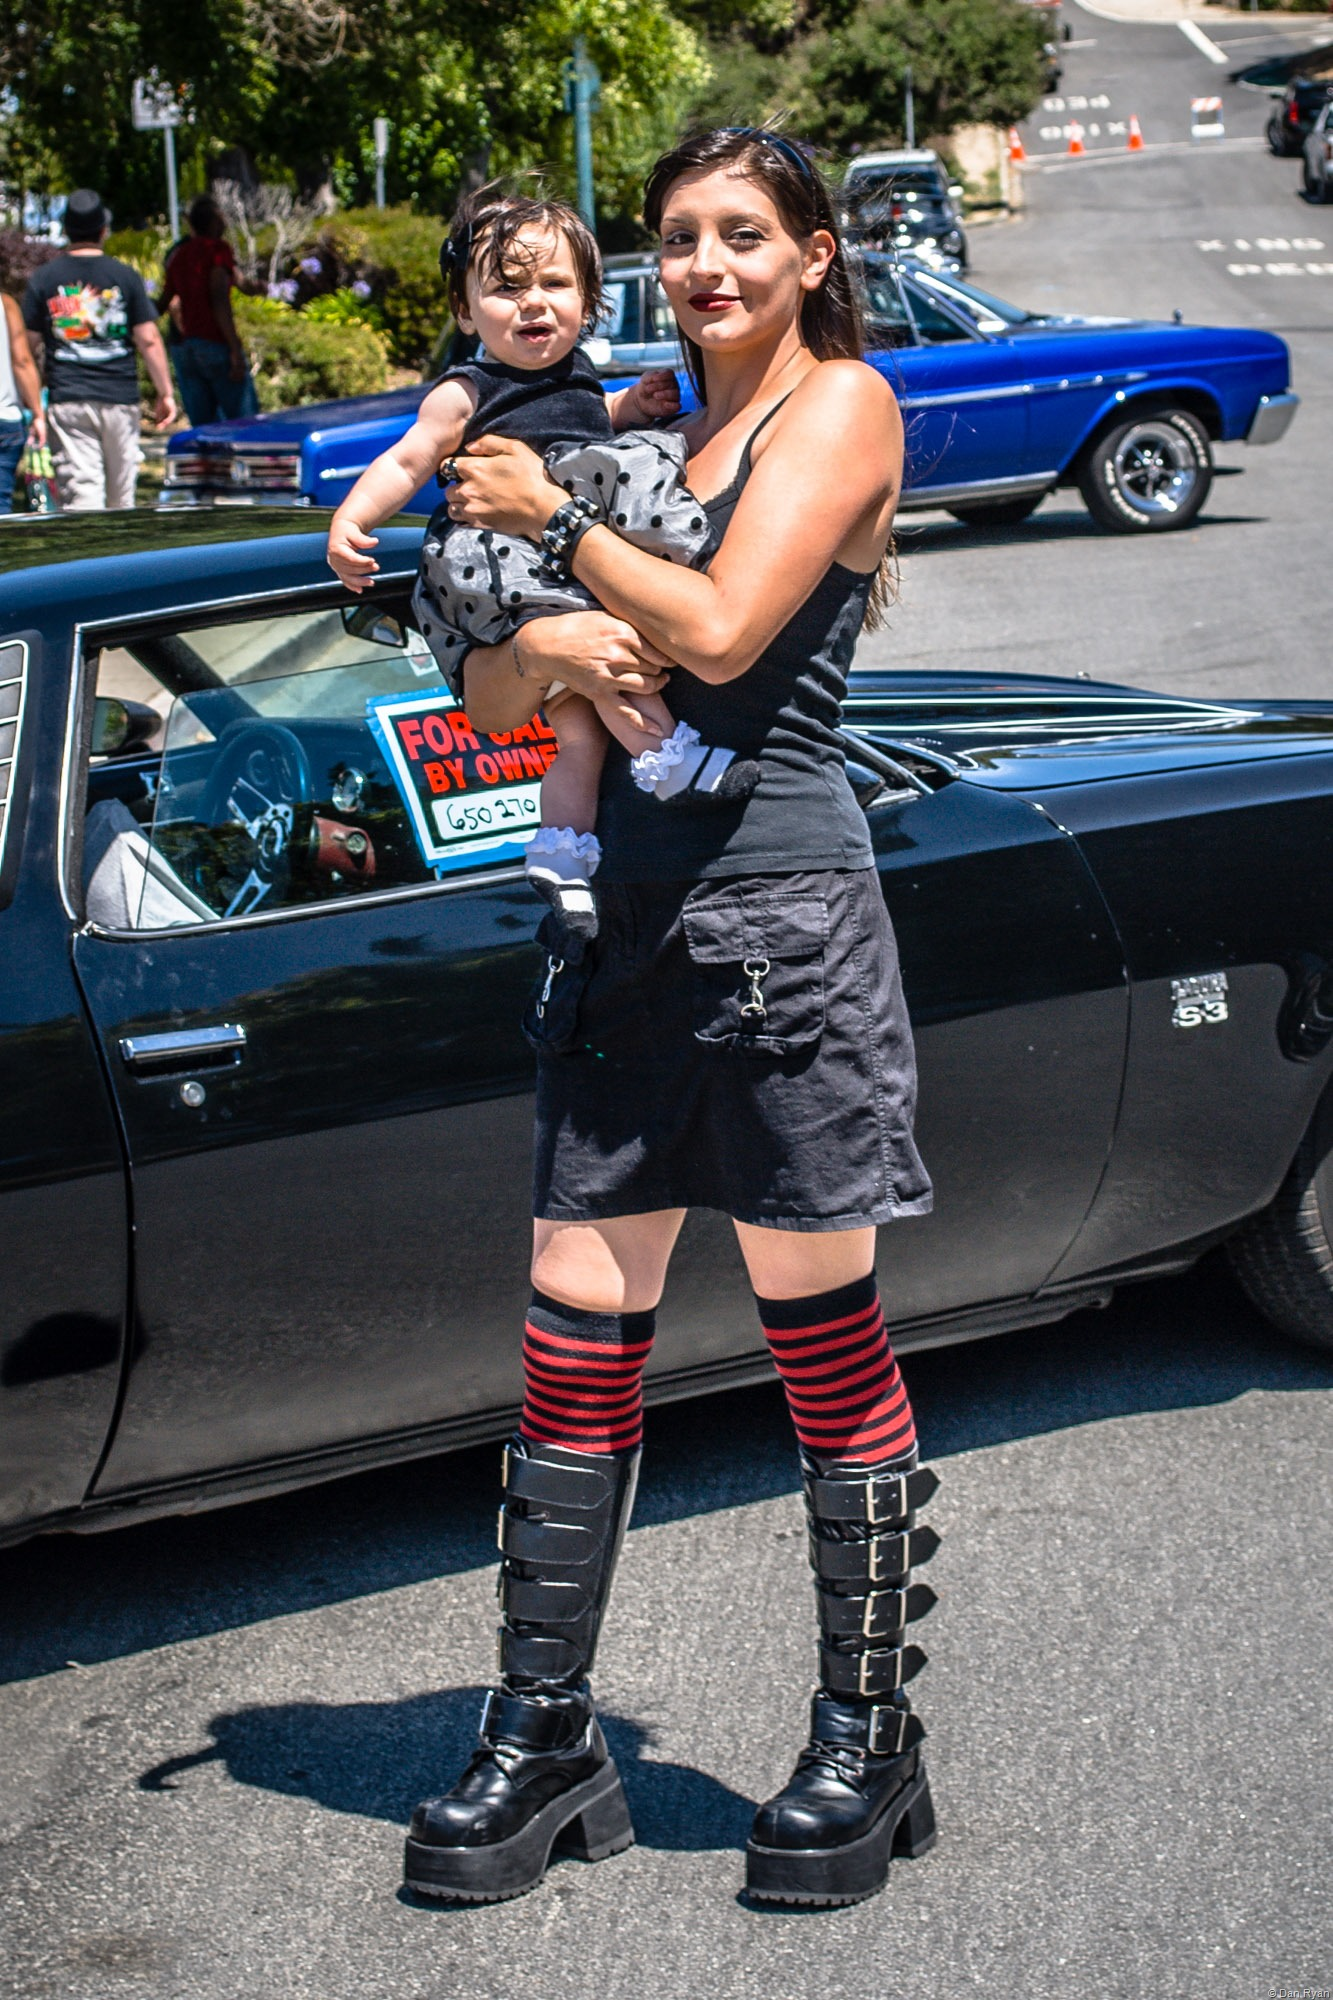 Car show mom and daughter